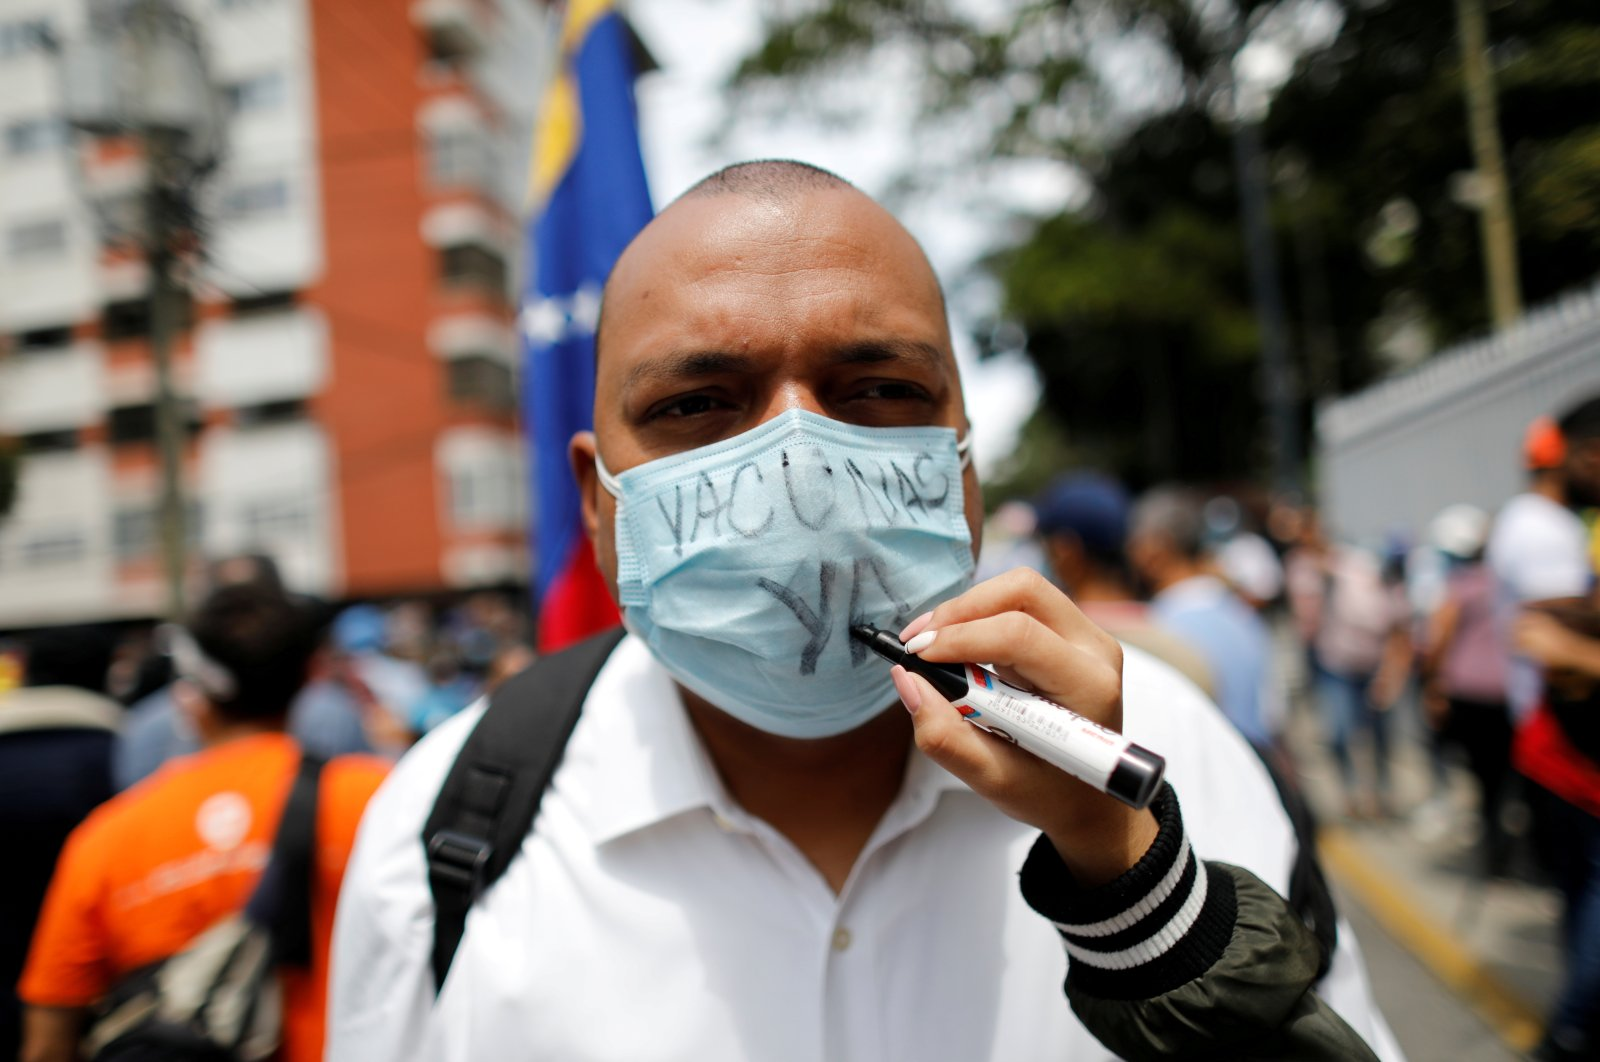 """A person writes """"Vaccines, now!"""" on the face mask of a health care worker during a protest demanding vaccinations against COVID-19, in Caracas, Venezuela, April 17, 2021. (REUTERS Photo)"""